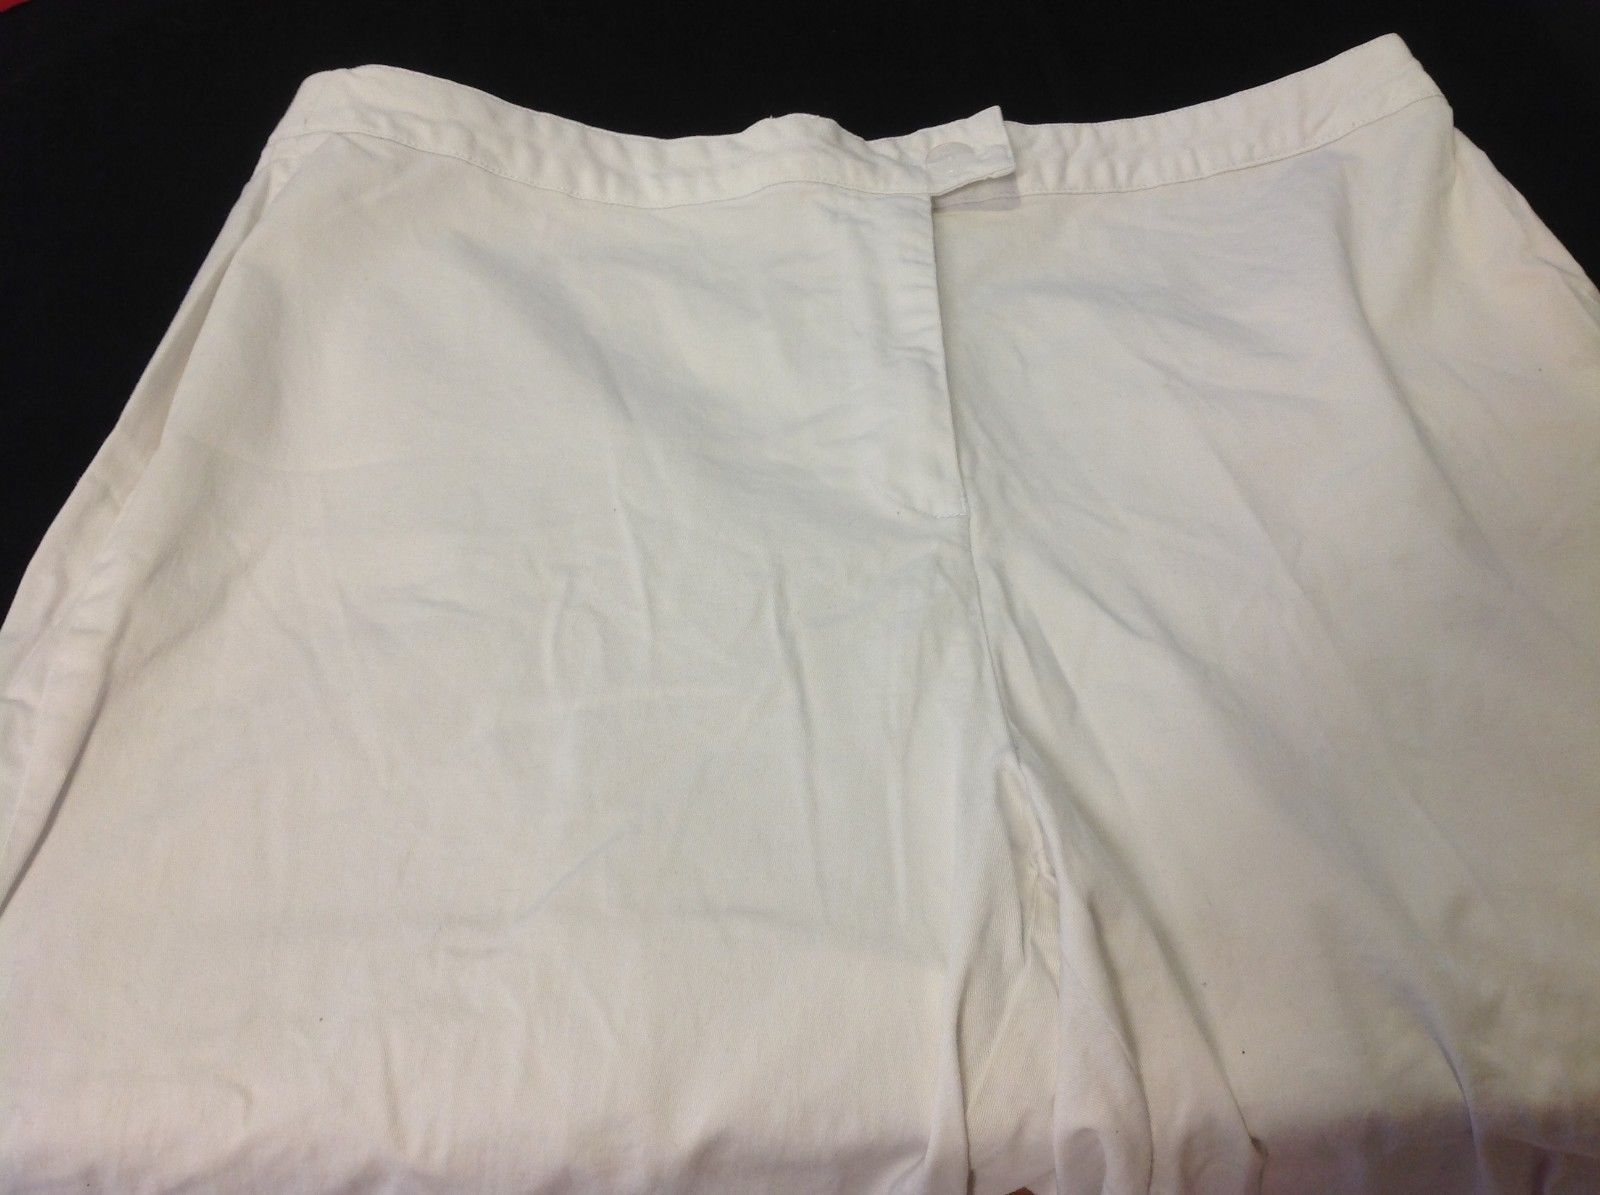 Cold water creek white pants for woman size 14